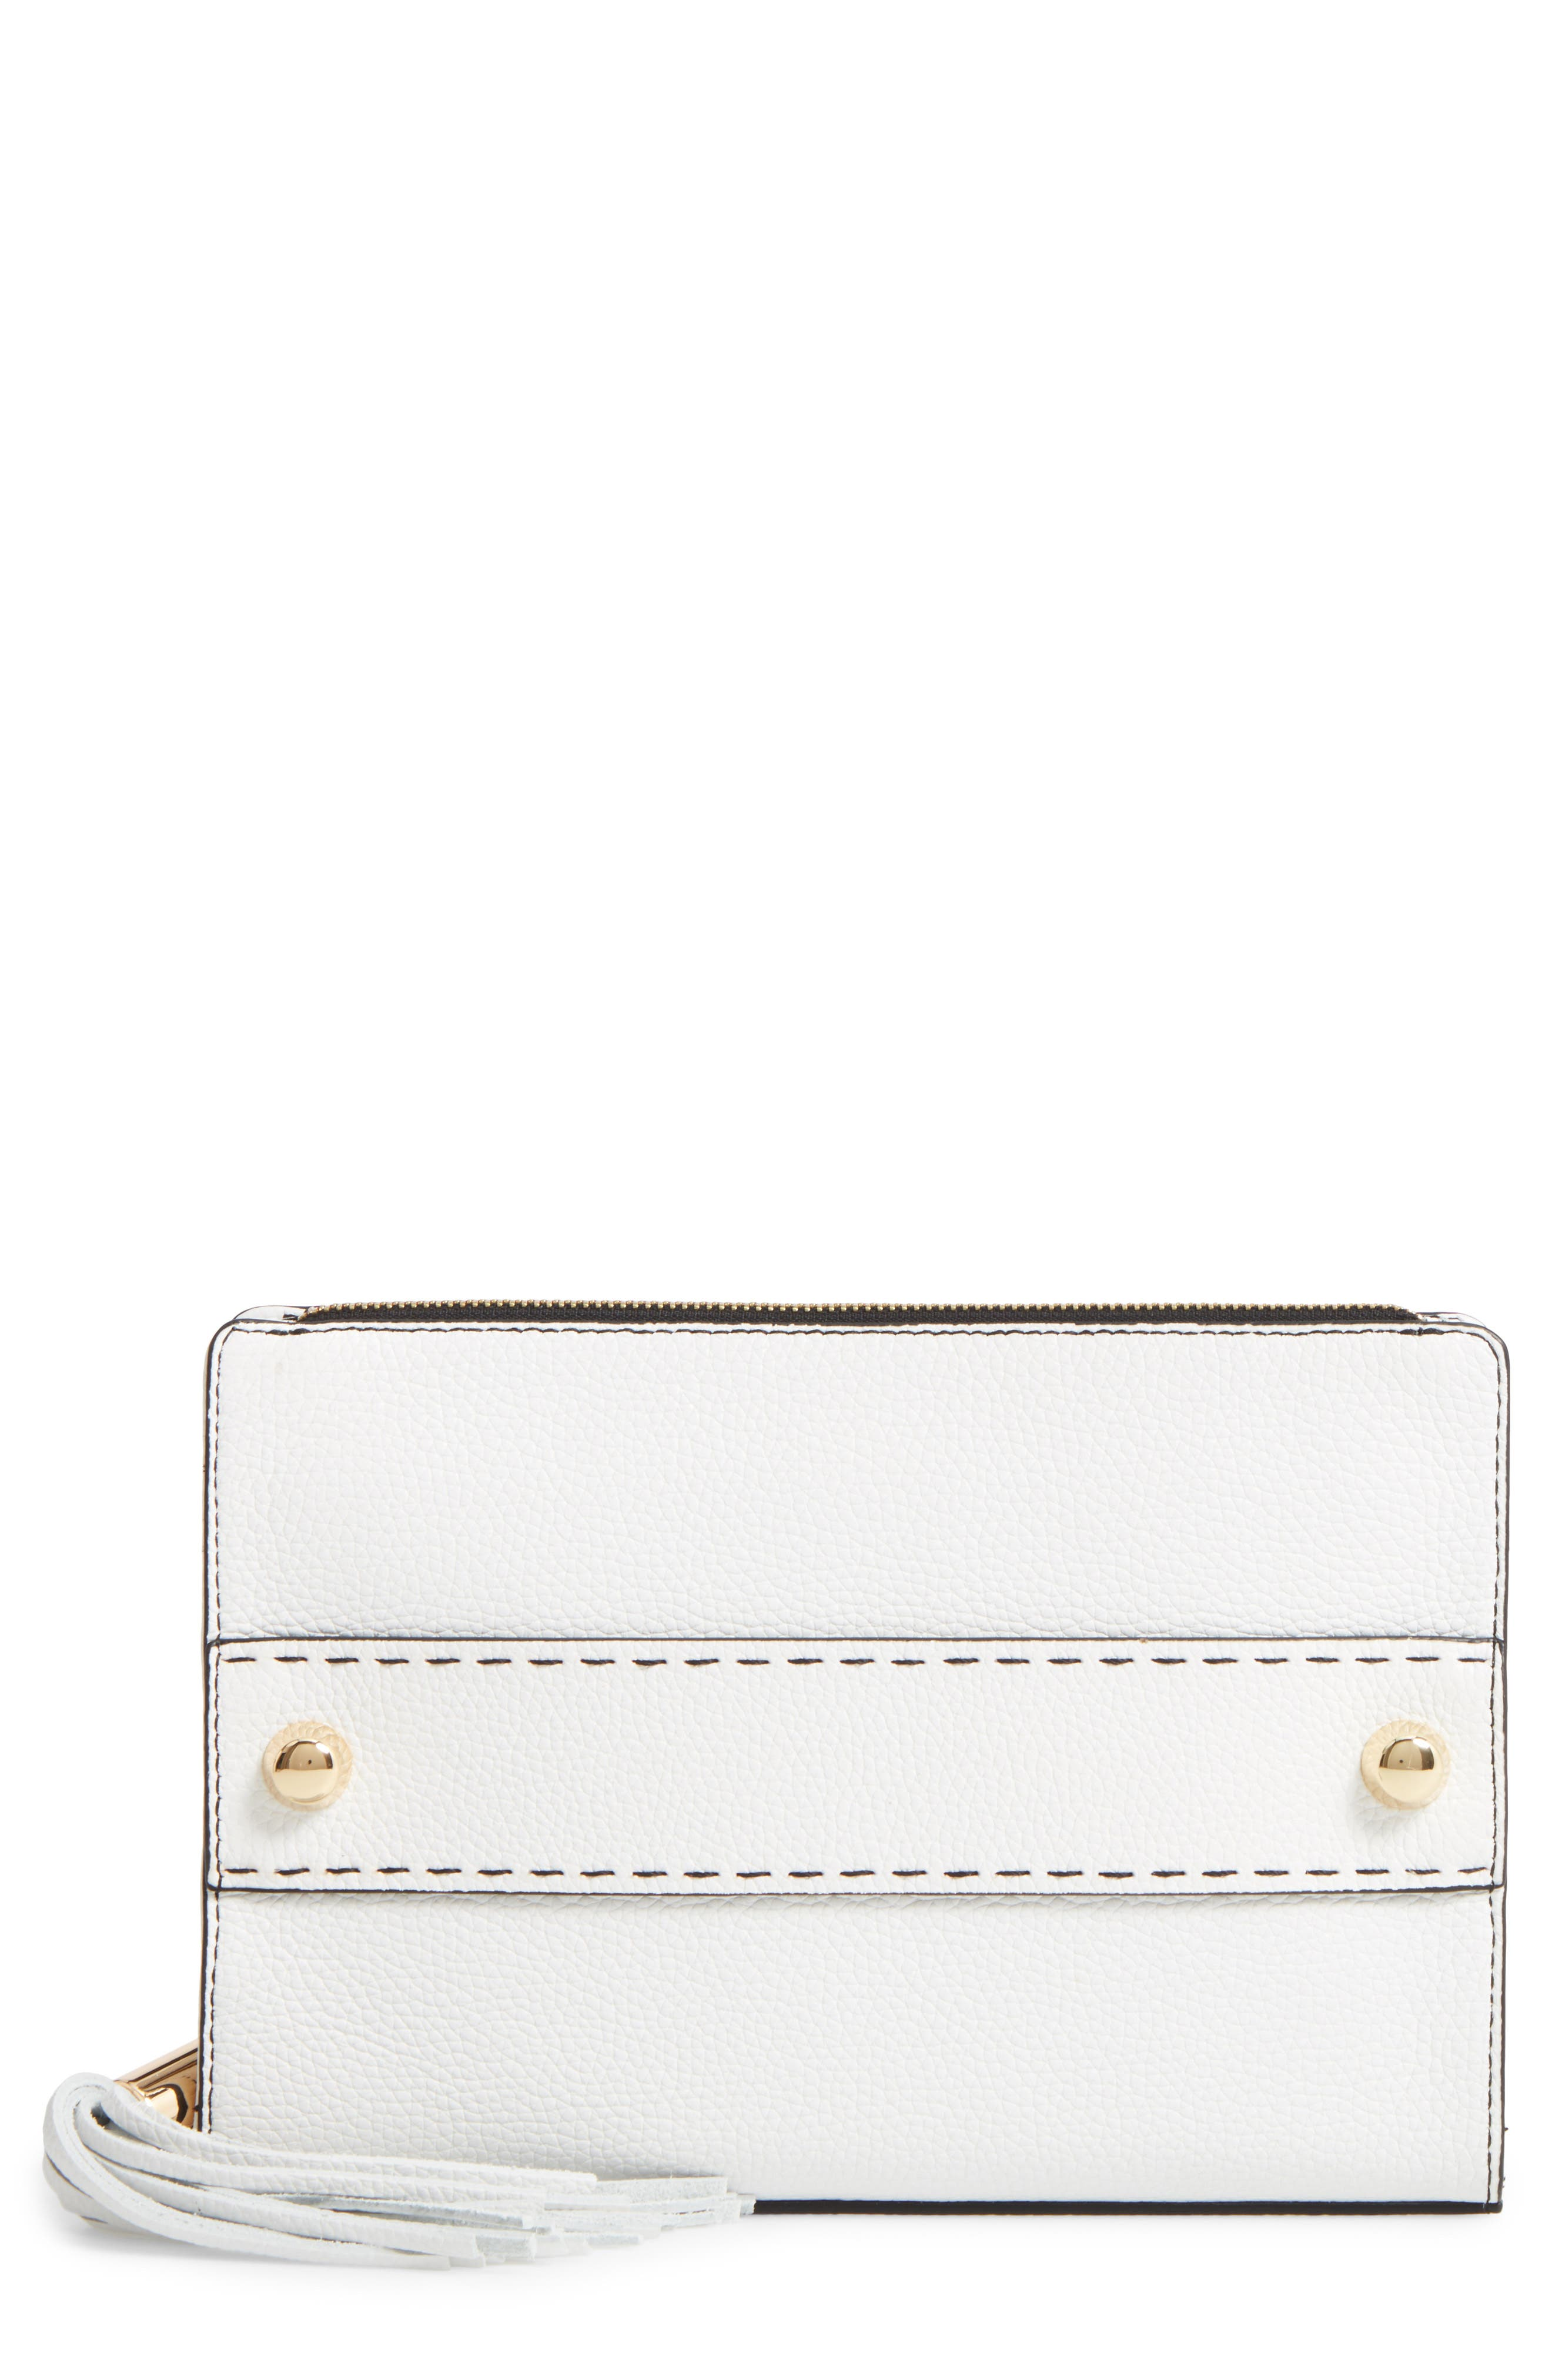 Milly Astor Leather Clutch